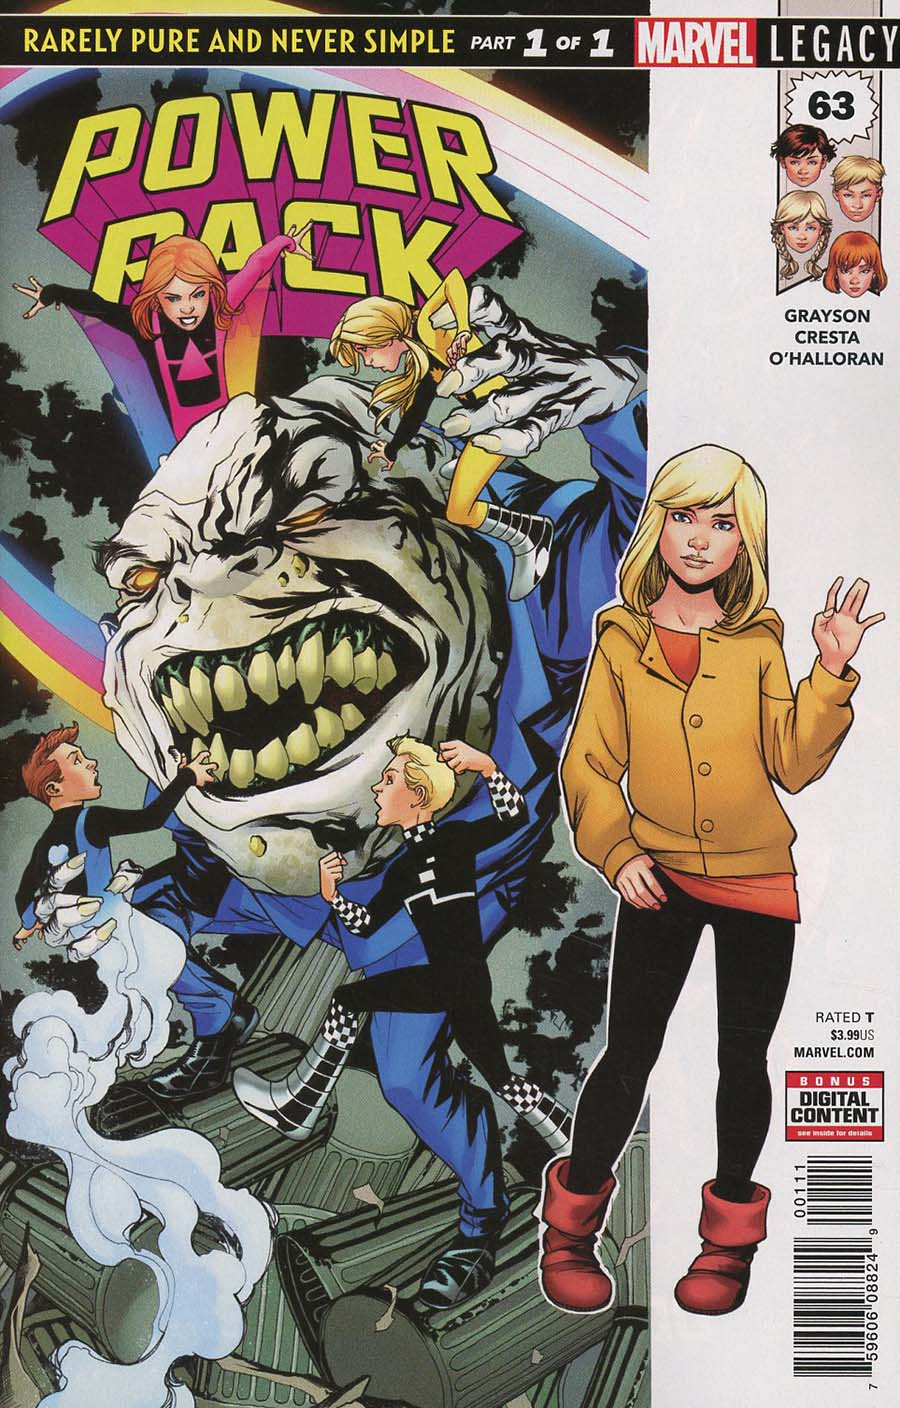 Power Pack Vol 3 #63 Cover A Regular Mike McKone Cover (Marvel Legacy Tie-In)